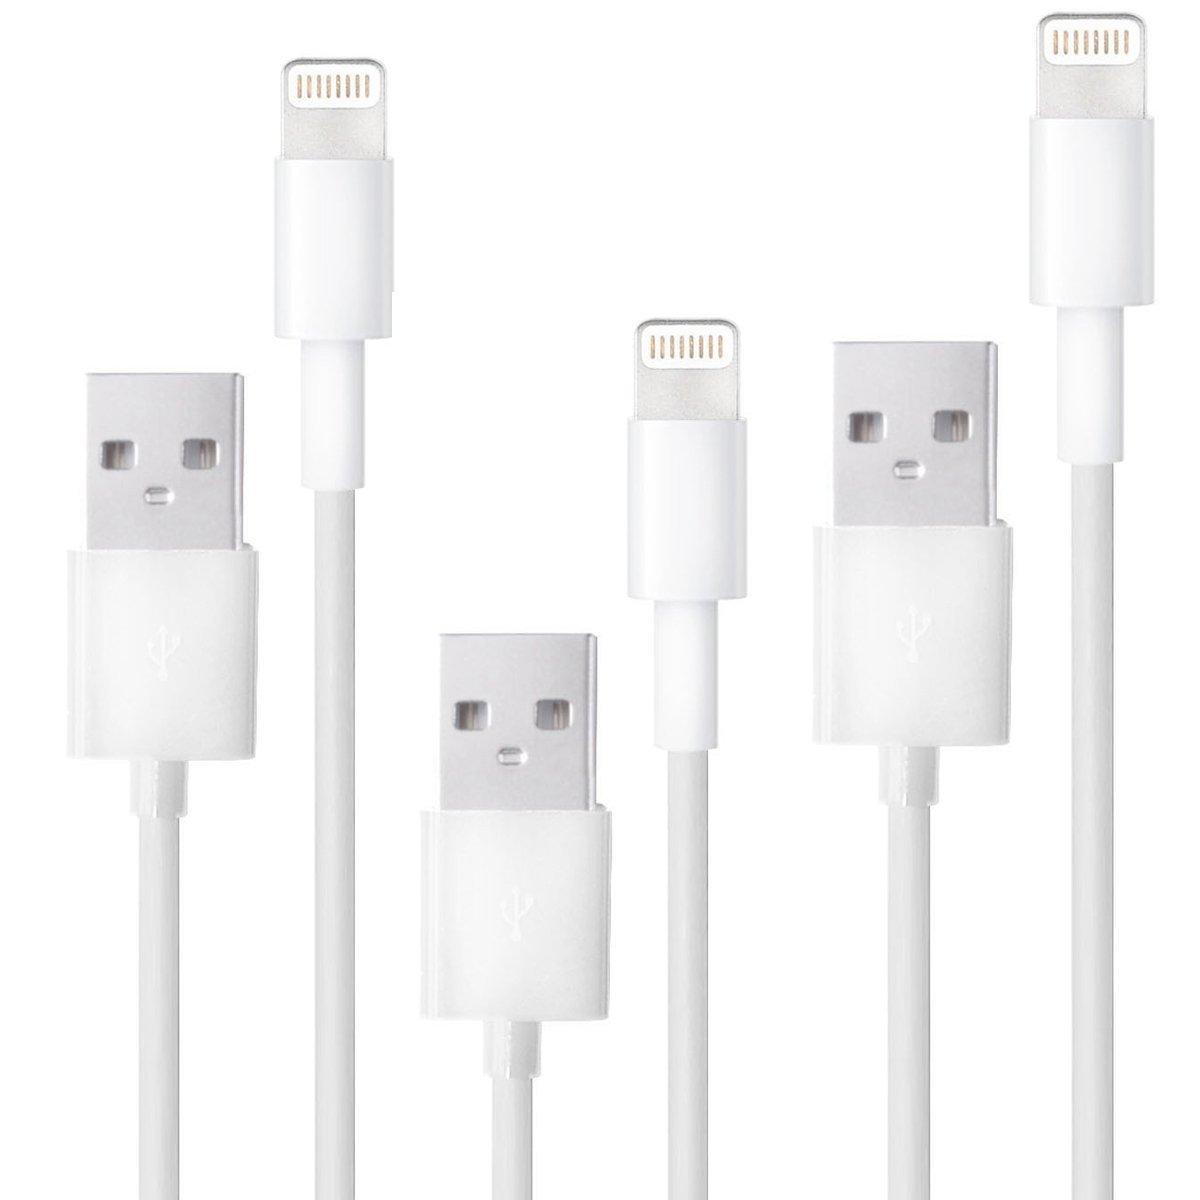 Apple MFI Certified Lightning Cable 3.3 ft (1 Meter)